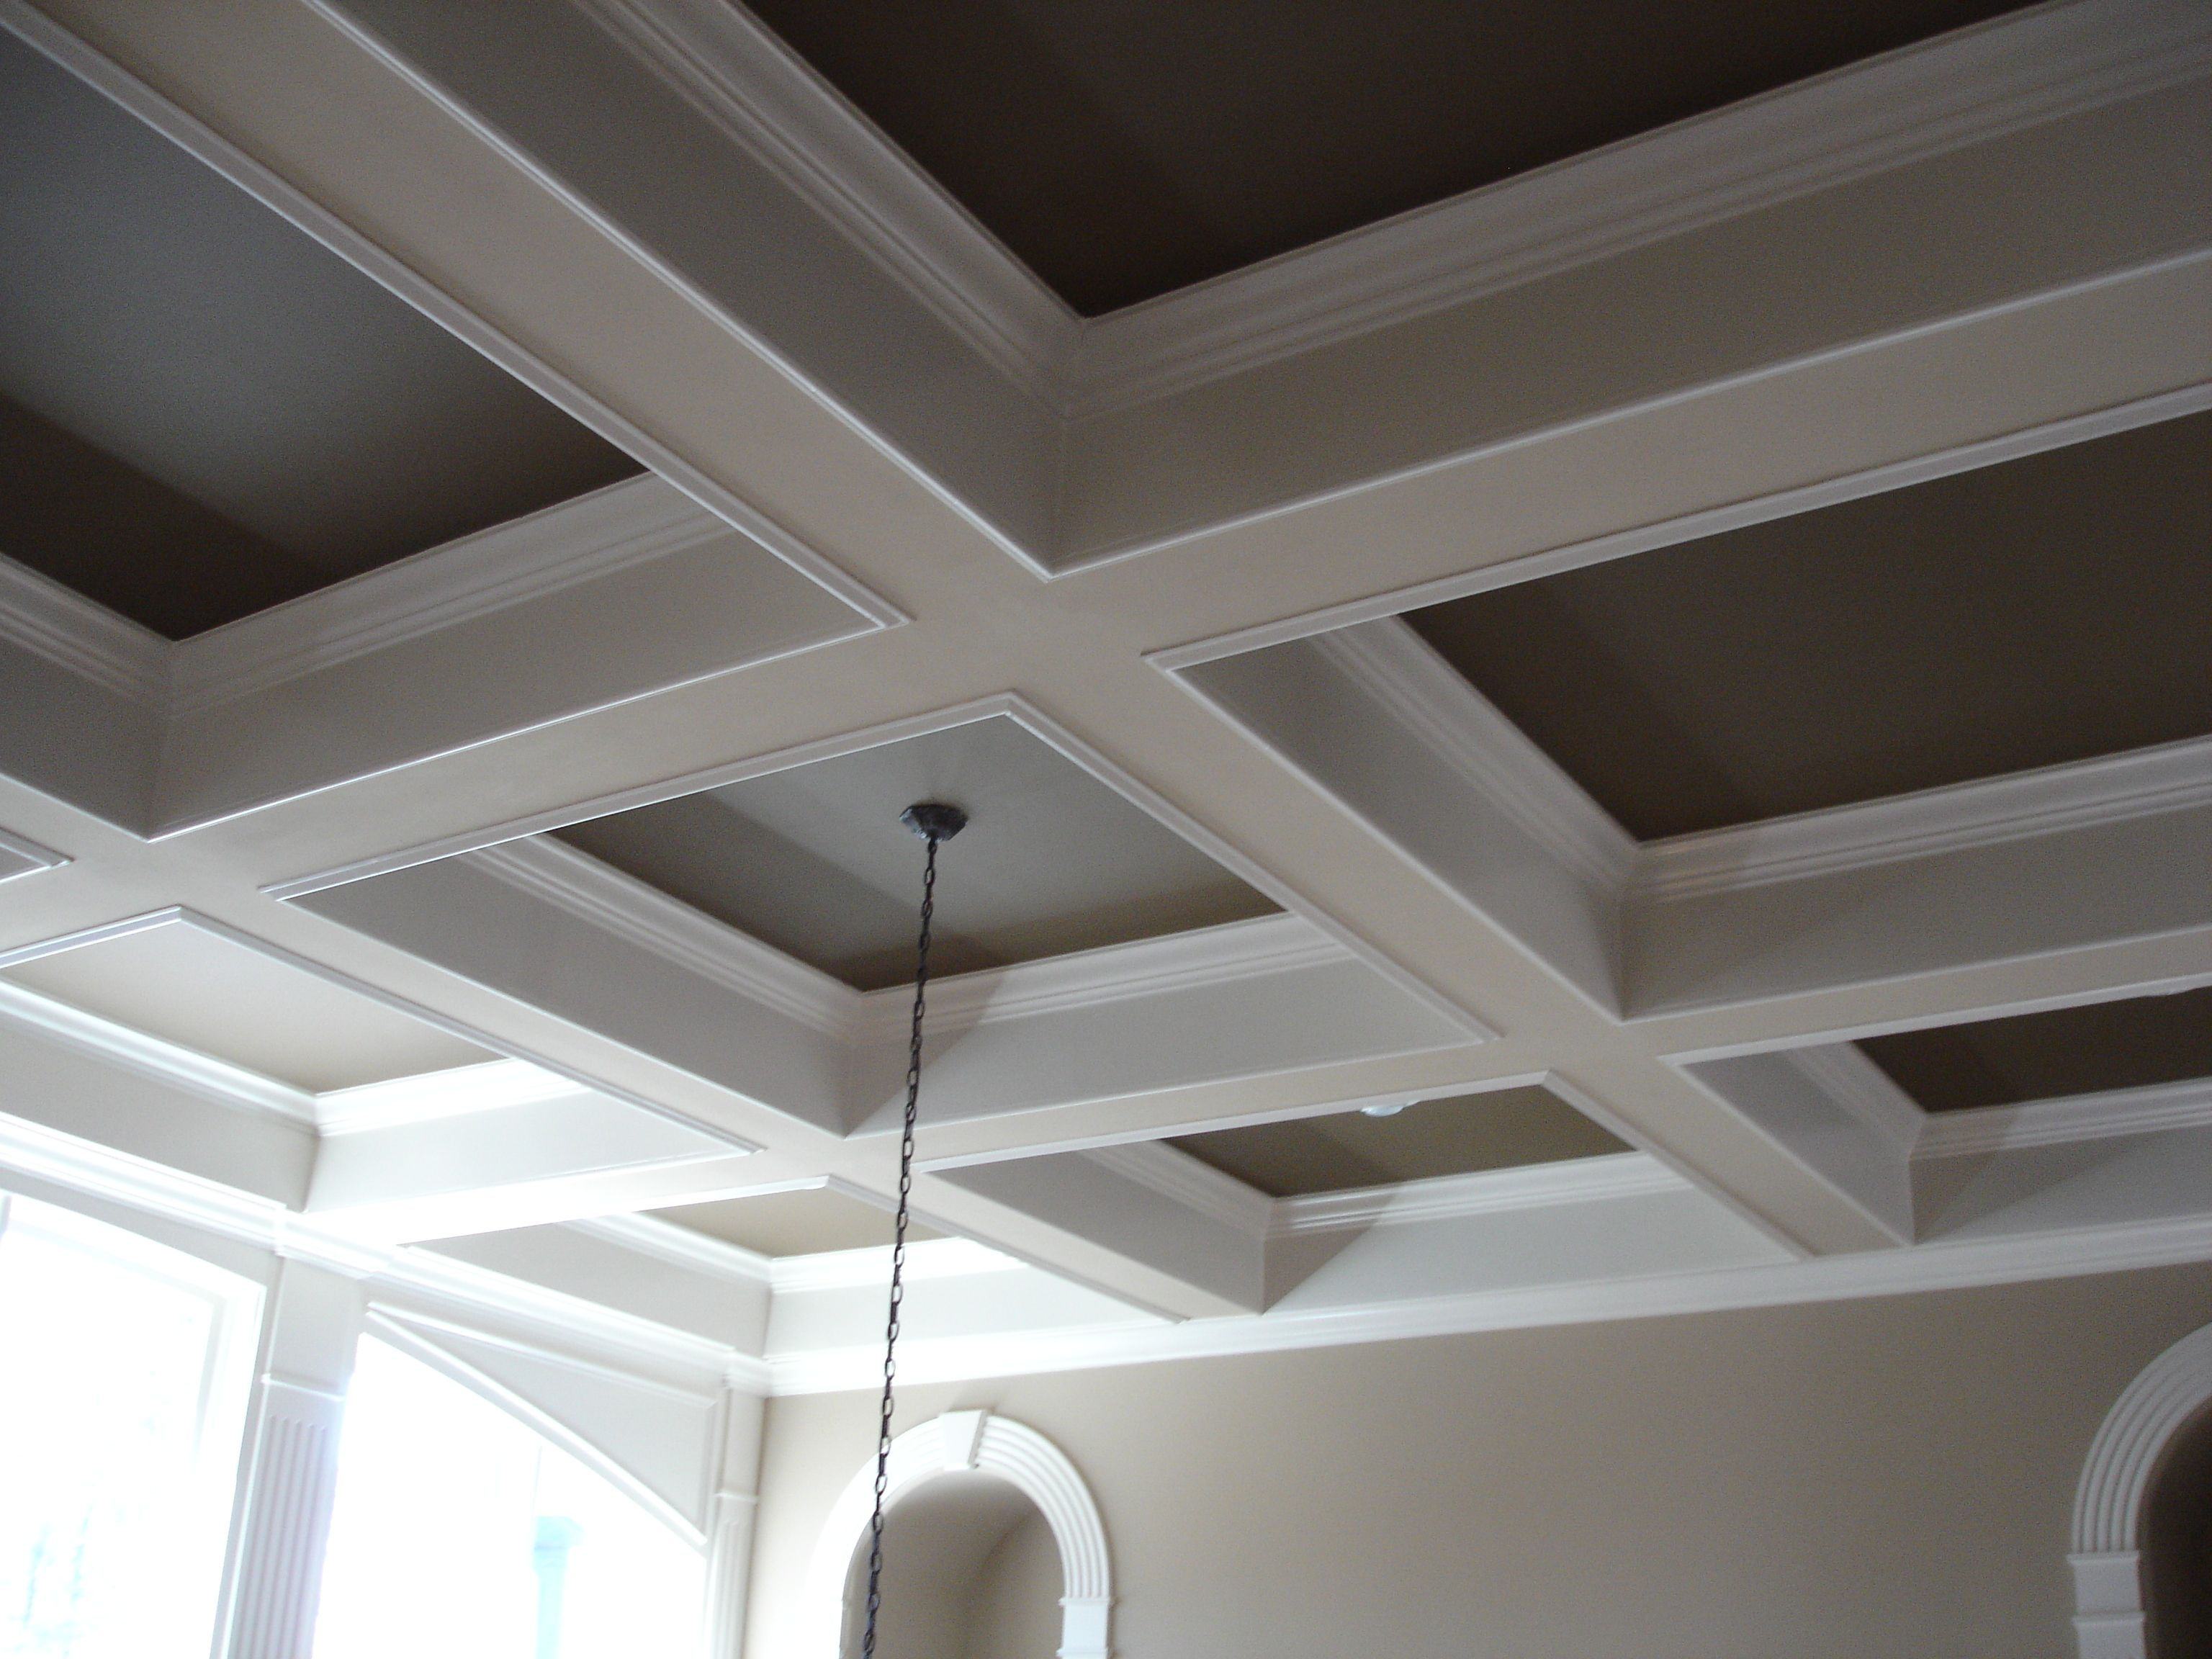 Design Coffered Ceiling Ideas roundup 10 diy ceiling embellishment projects ceilings coffer projects